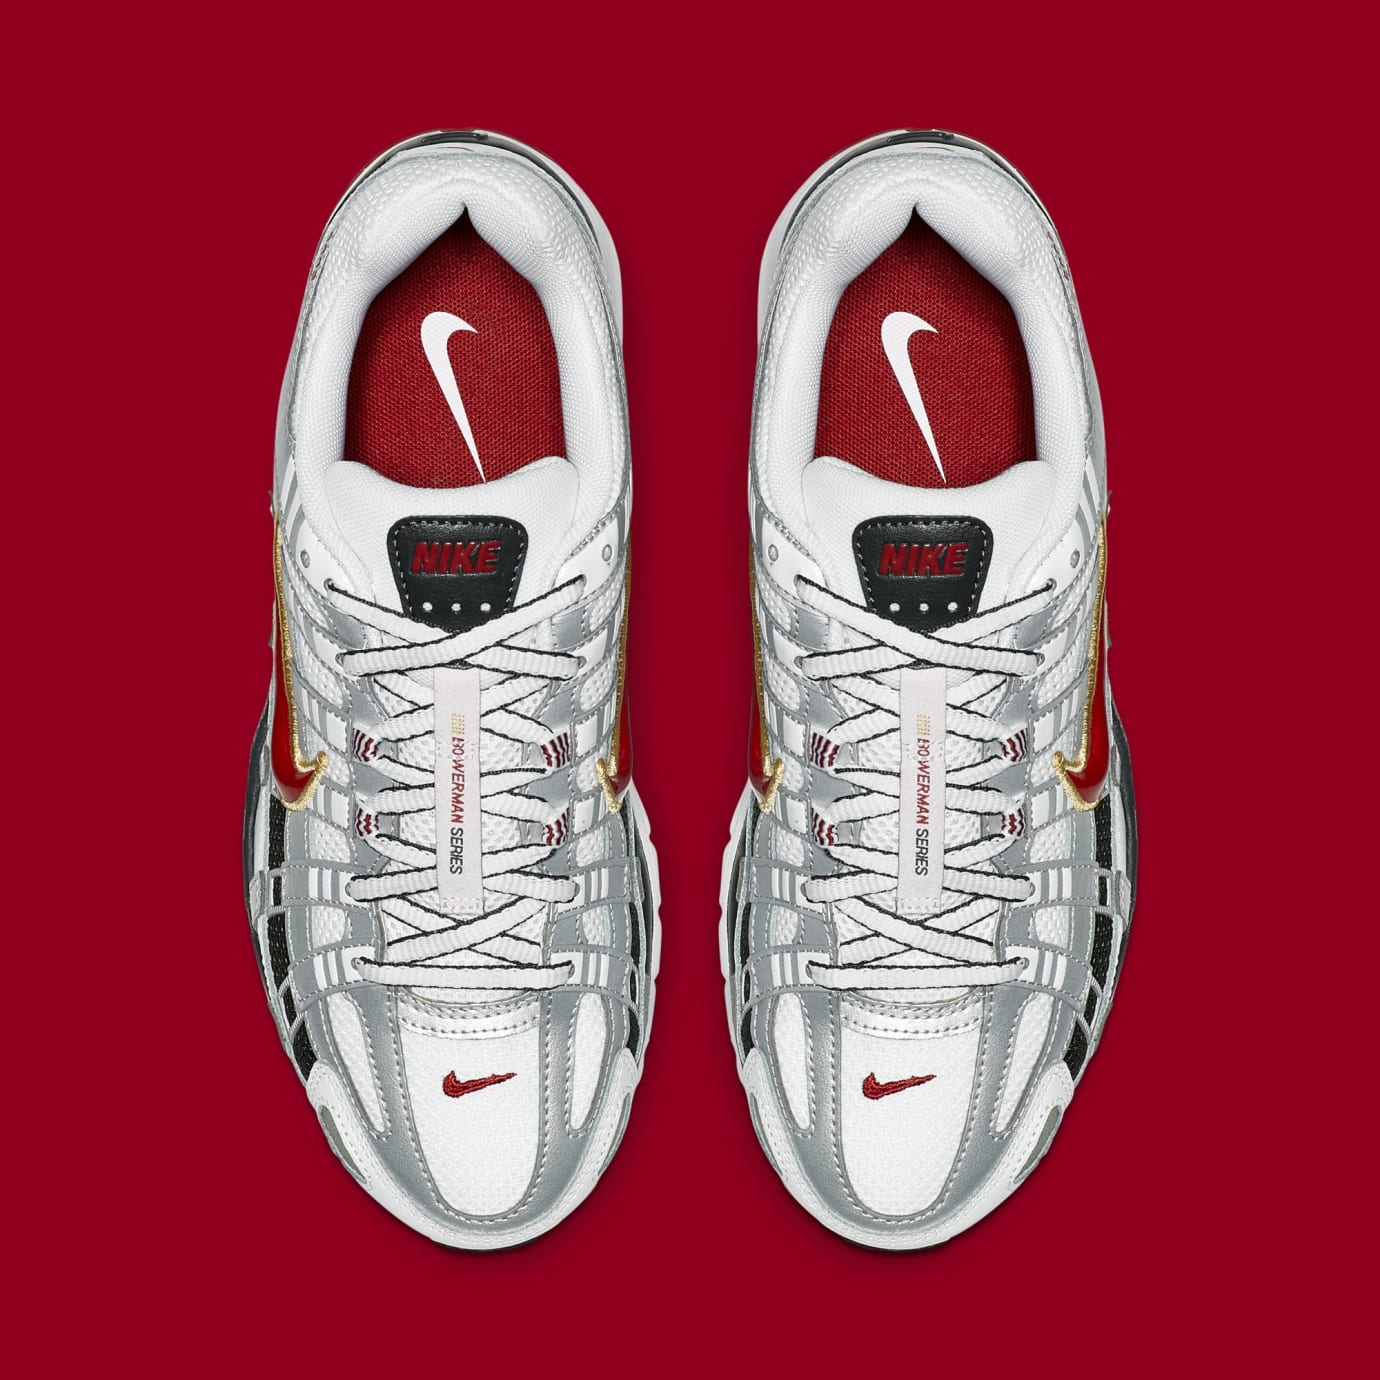 Nike P-6000 CNPT 'Metallic Silver/White/University Red' BV1021-101 (Top)